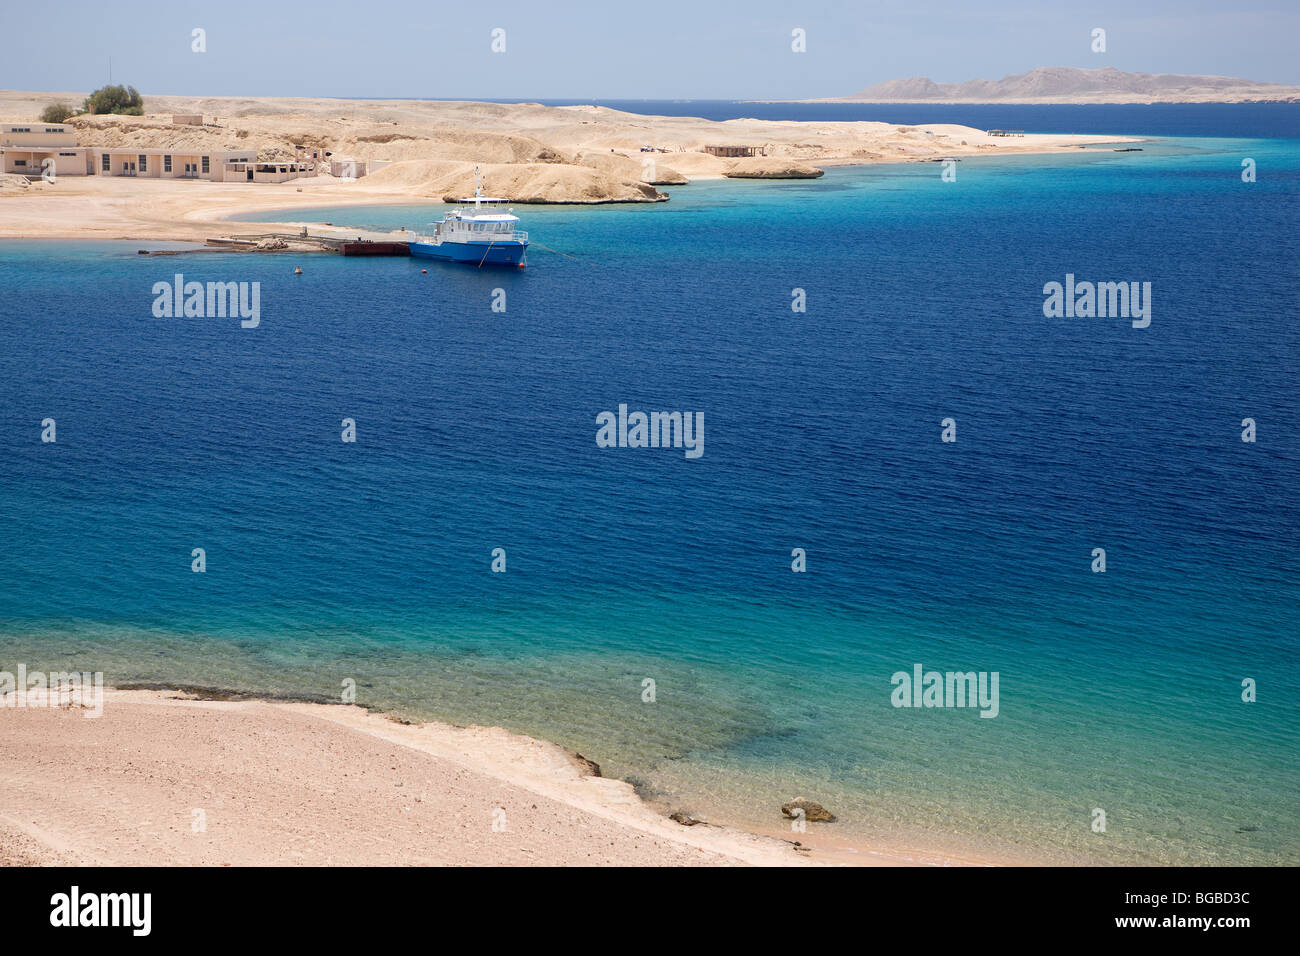 Africa, Egypt, Sharm el Sheikh, national park Ras Mohammed, beach, sea, water, blue, colors, boat - Stock Image